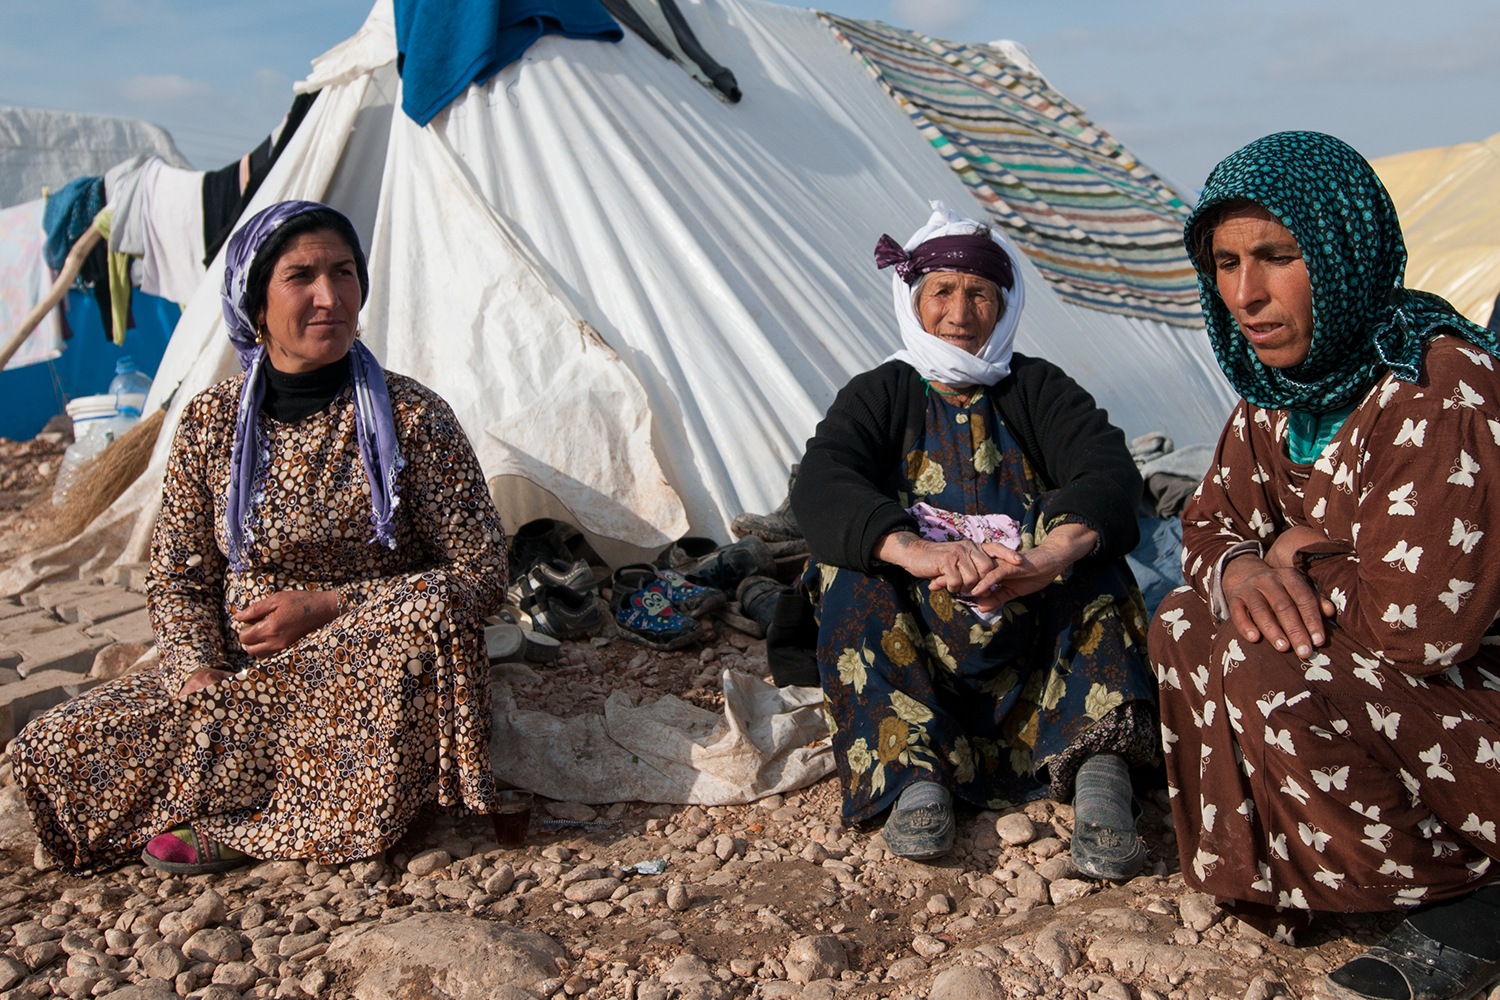 Syrian women sitting in front of their tent in a refugee camp near suruç